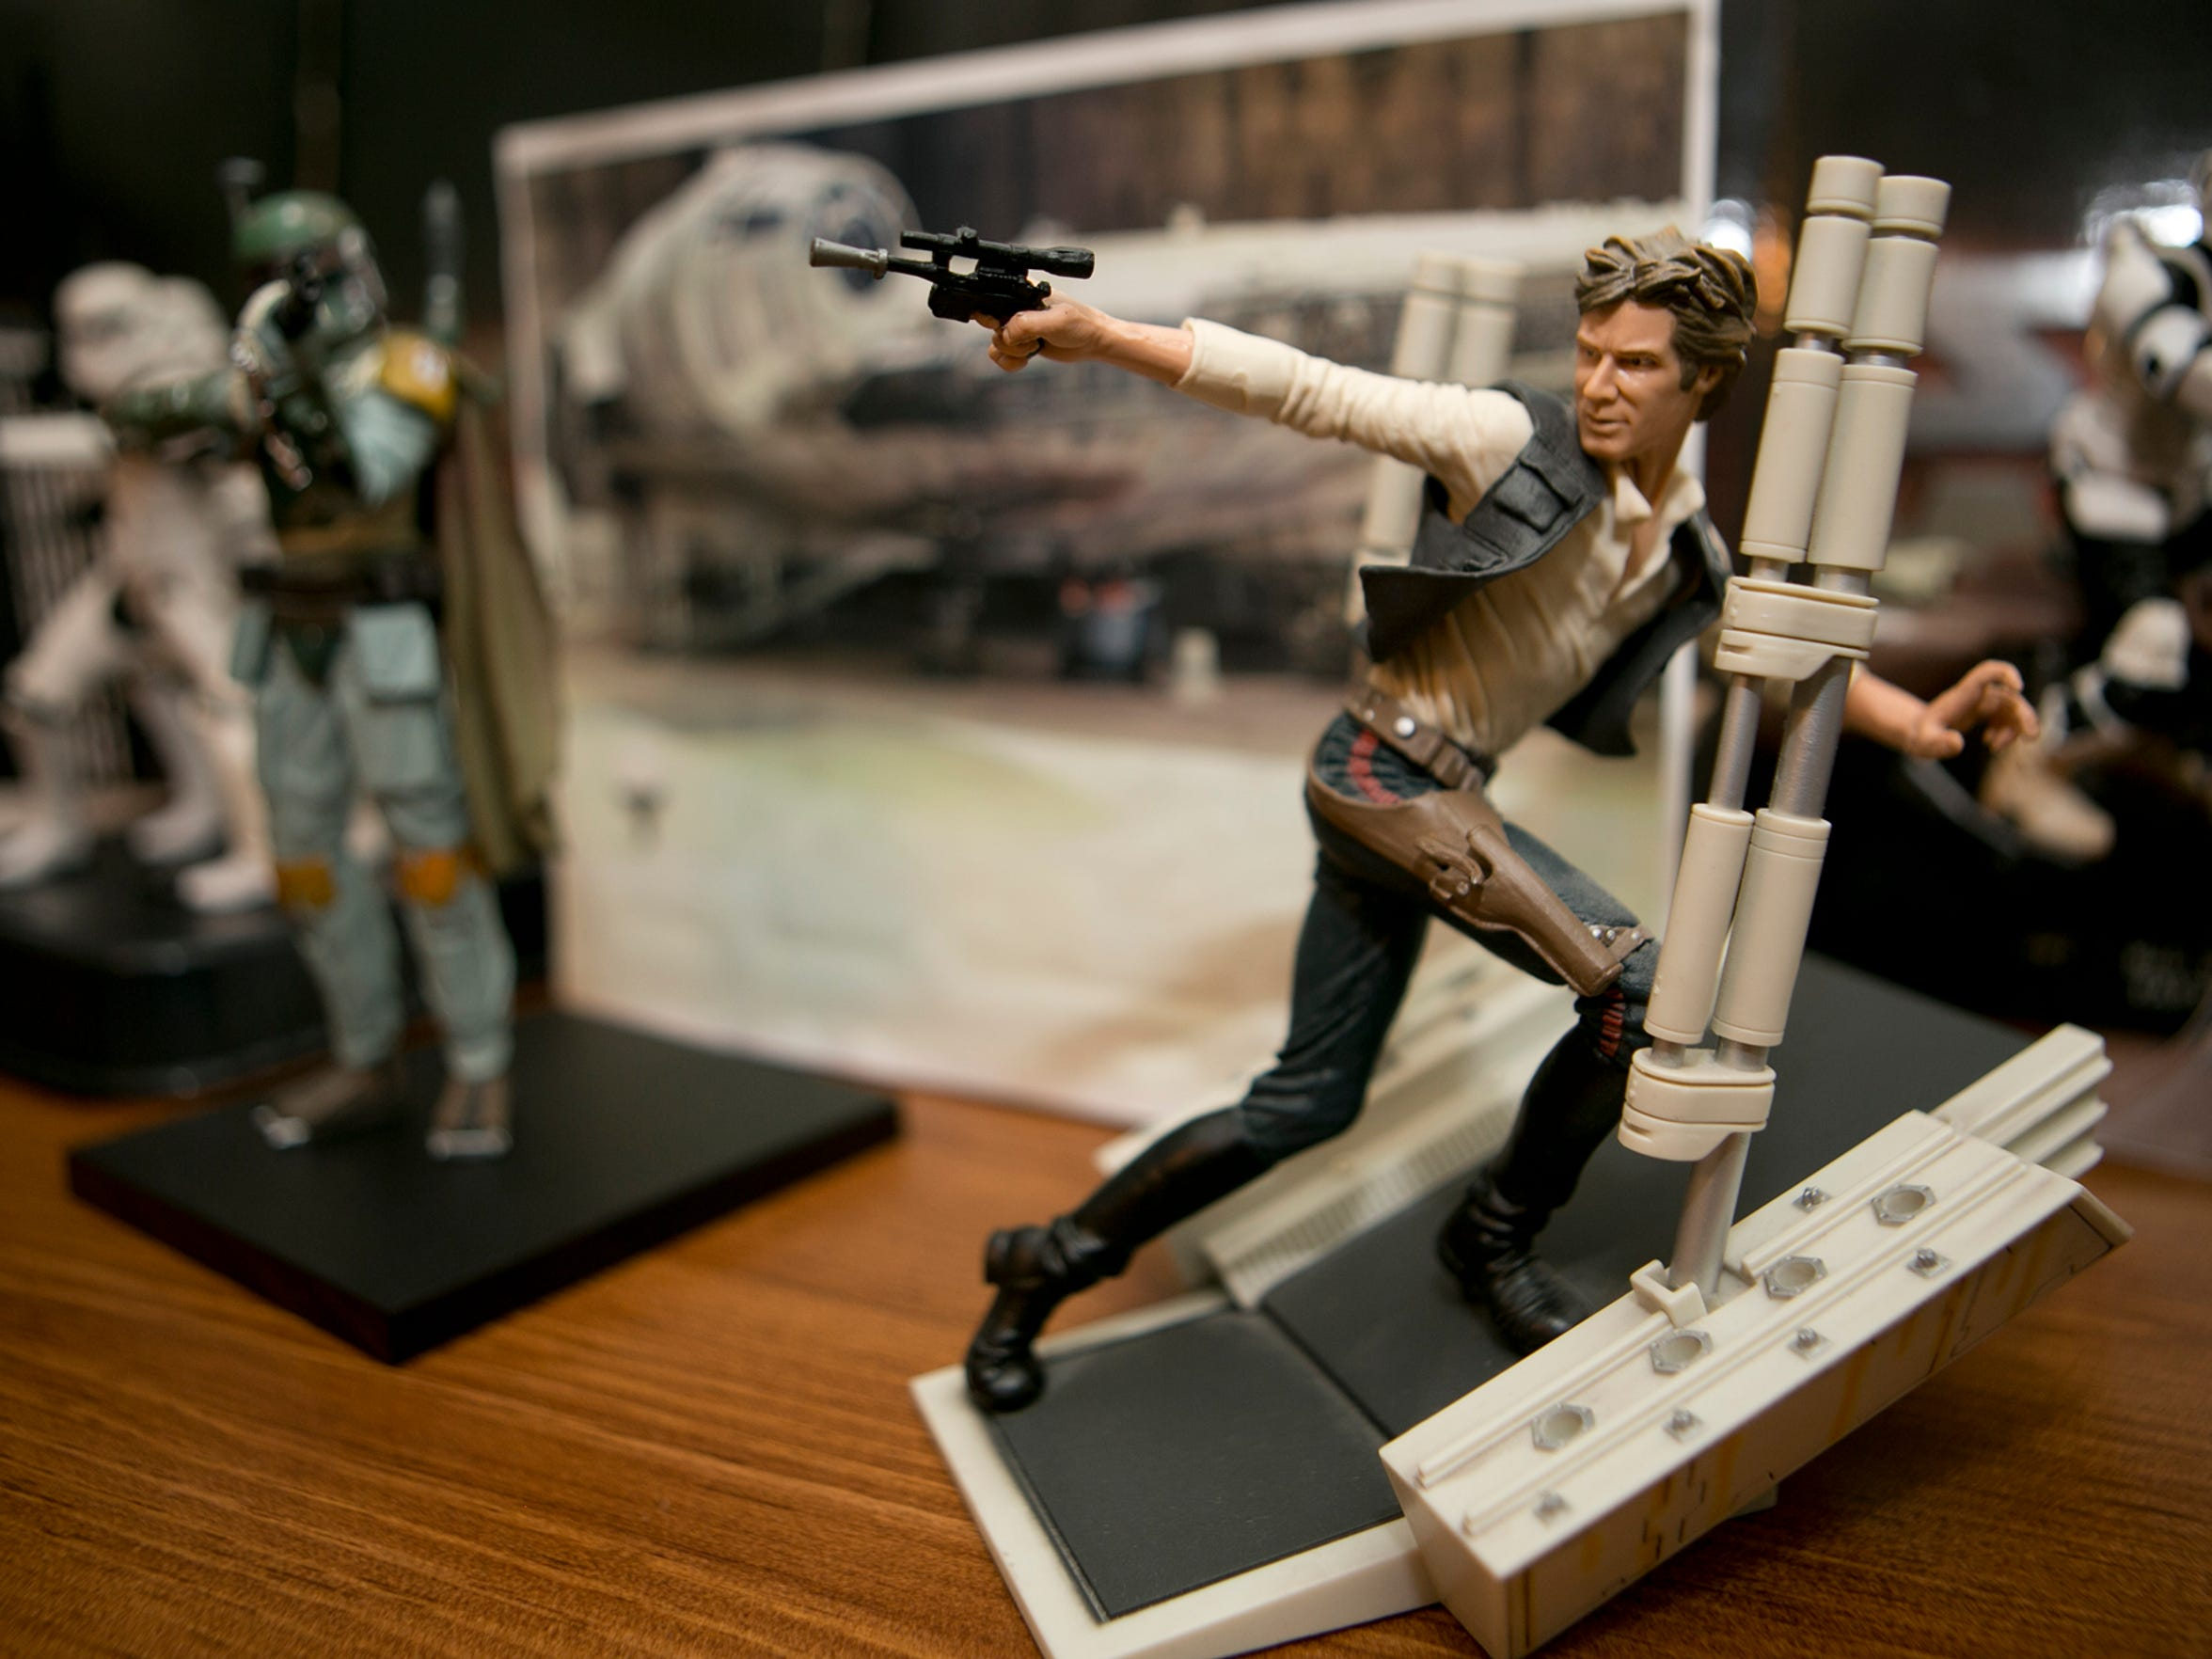 A Han Solo figurine at Frank Wileman's home in Custer, Wednesday, Dec. 9, 2015.